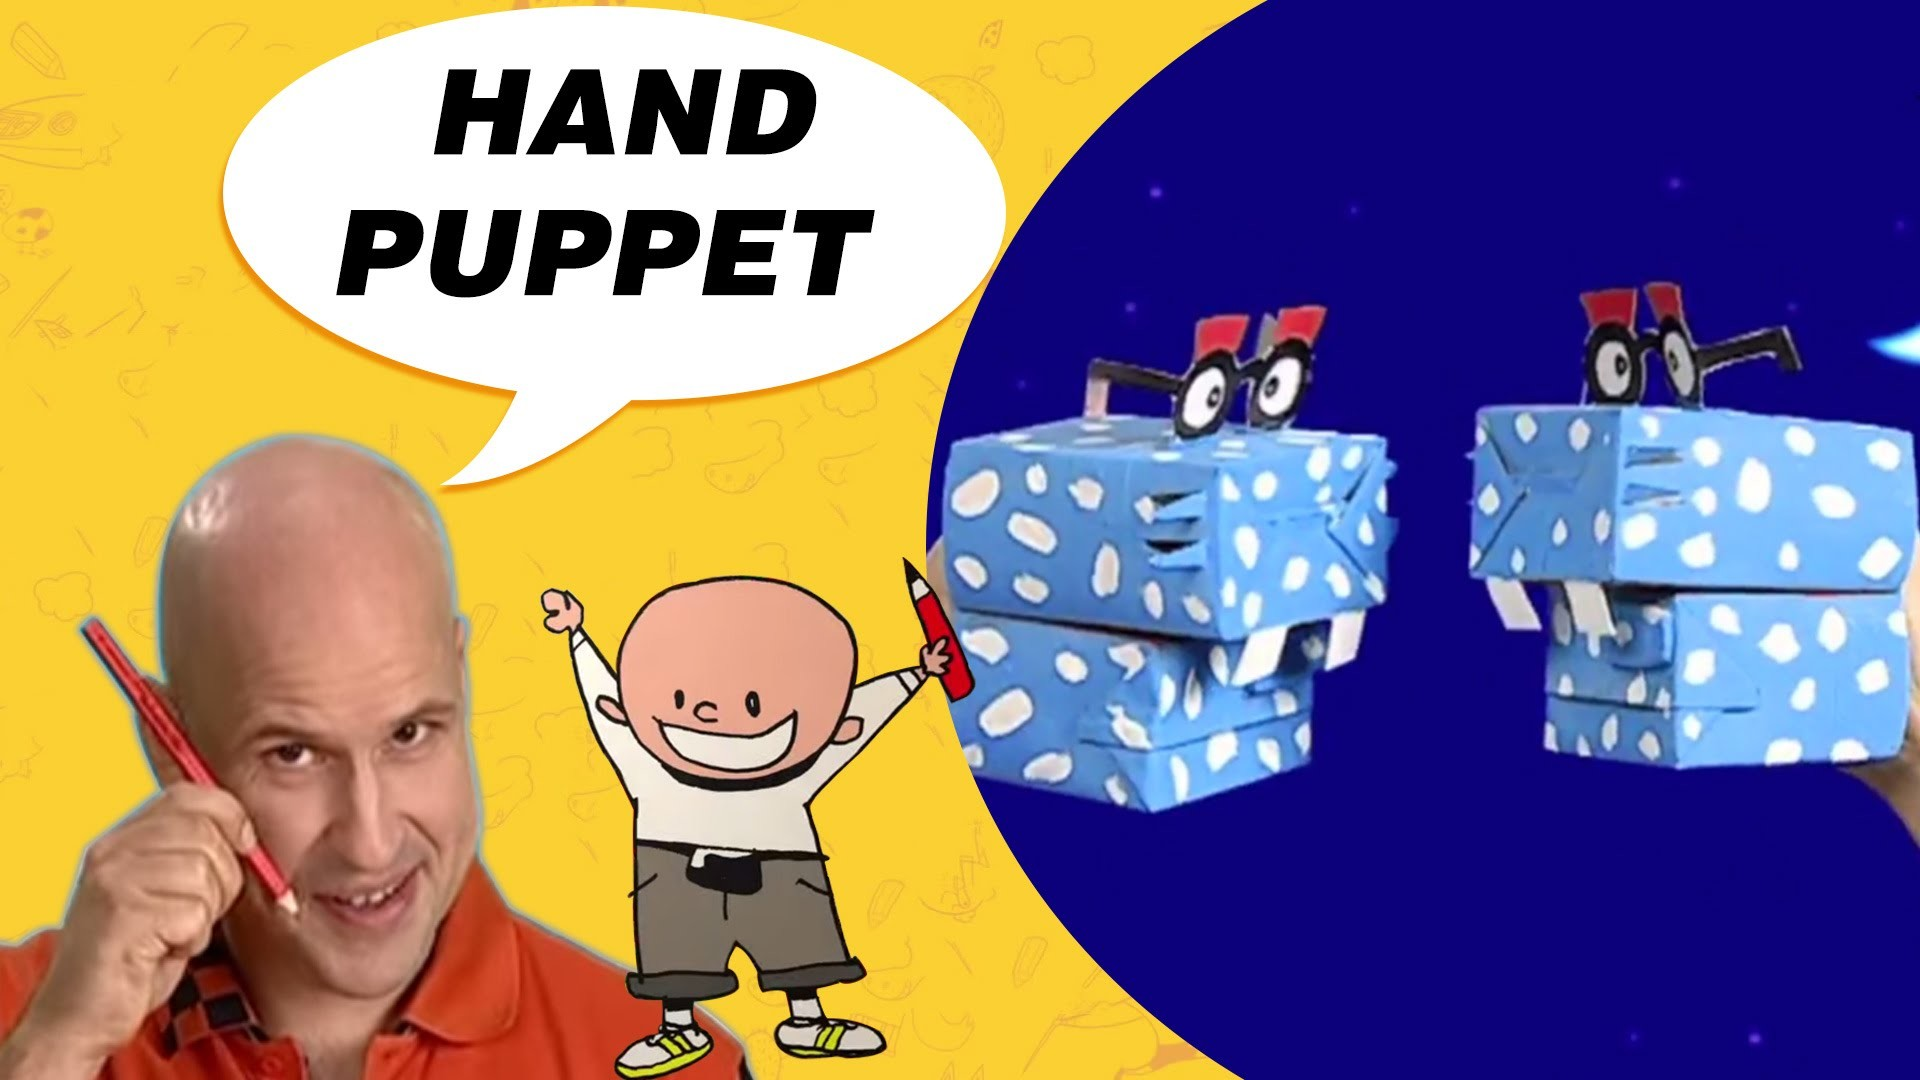 Crafts Ideas for Kids - A Hand Puppet | DIY on BoxYourSelf